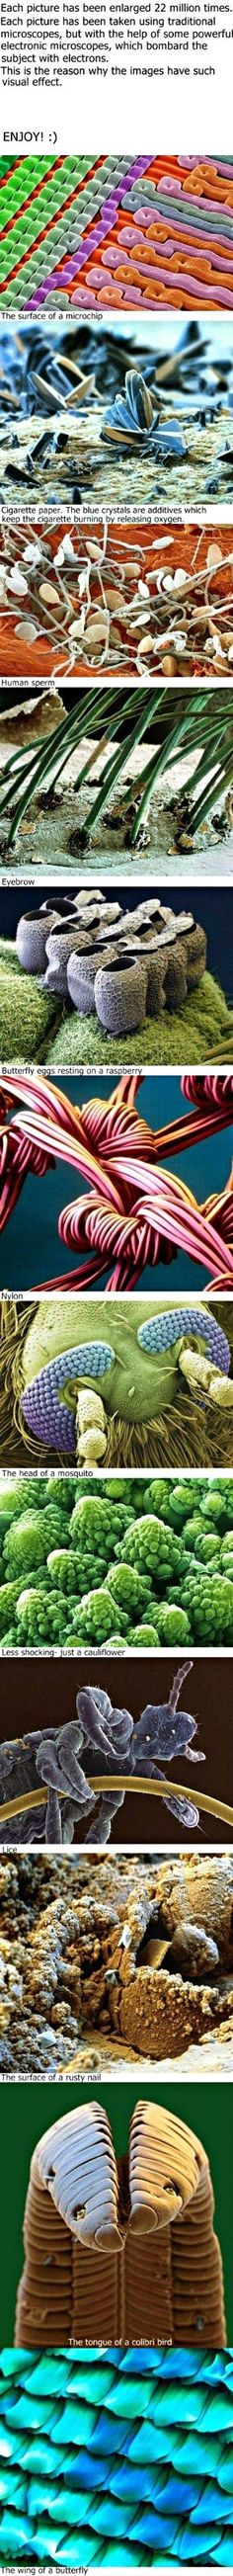 Electron Microscope images.  These would be great in pointing out certain unsanitary practices.  Uh hem.  ;P